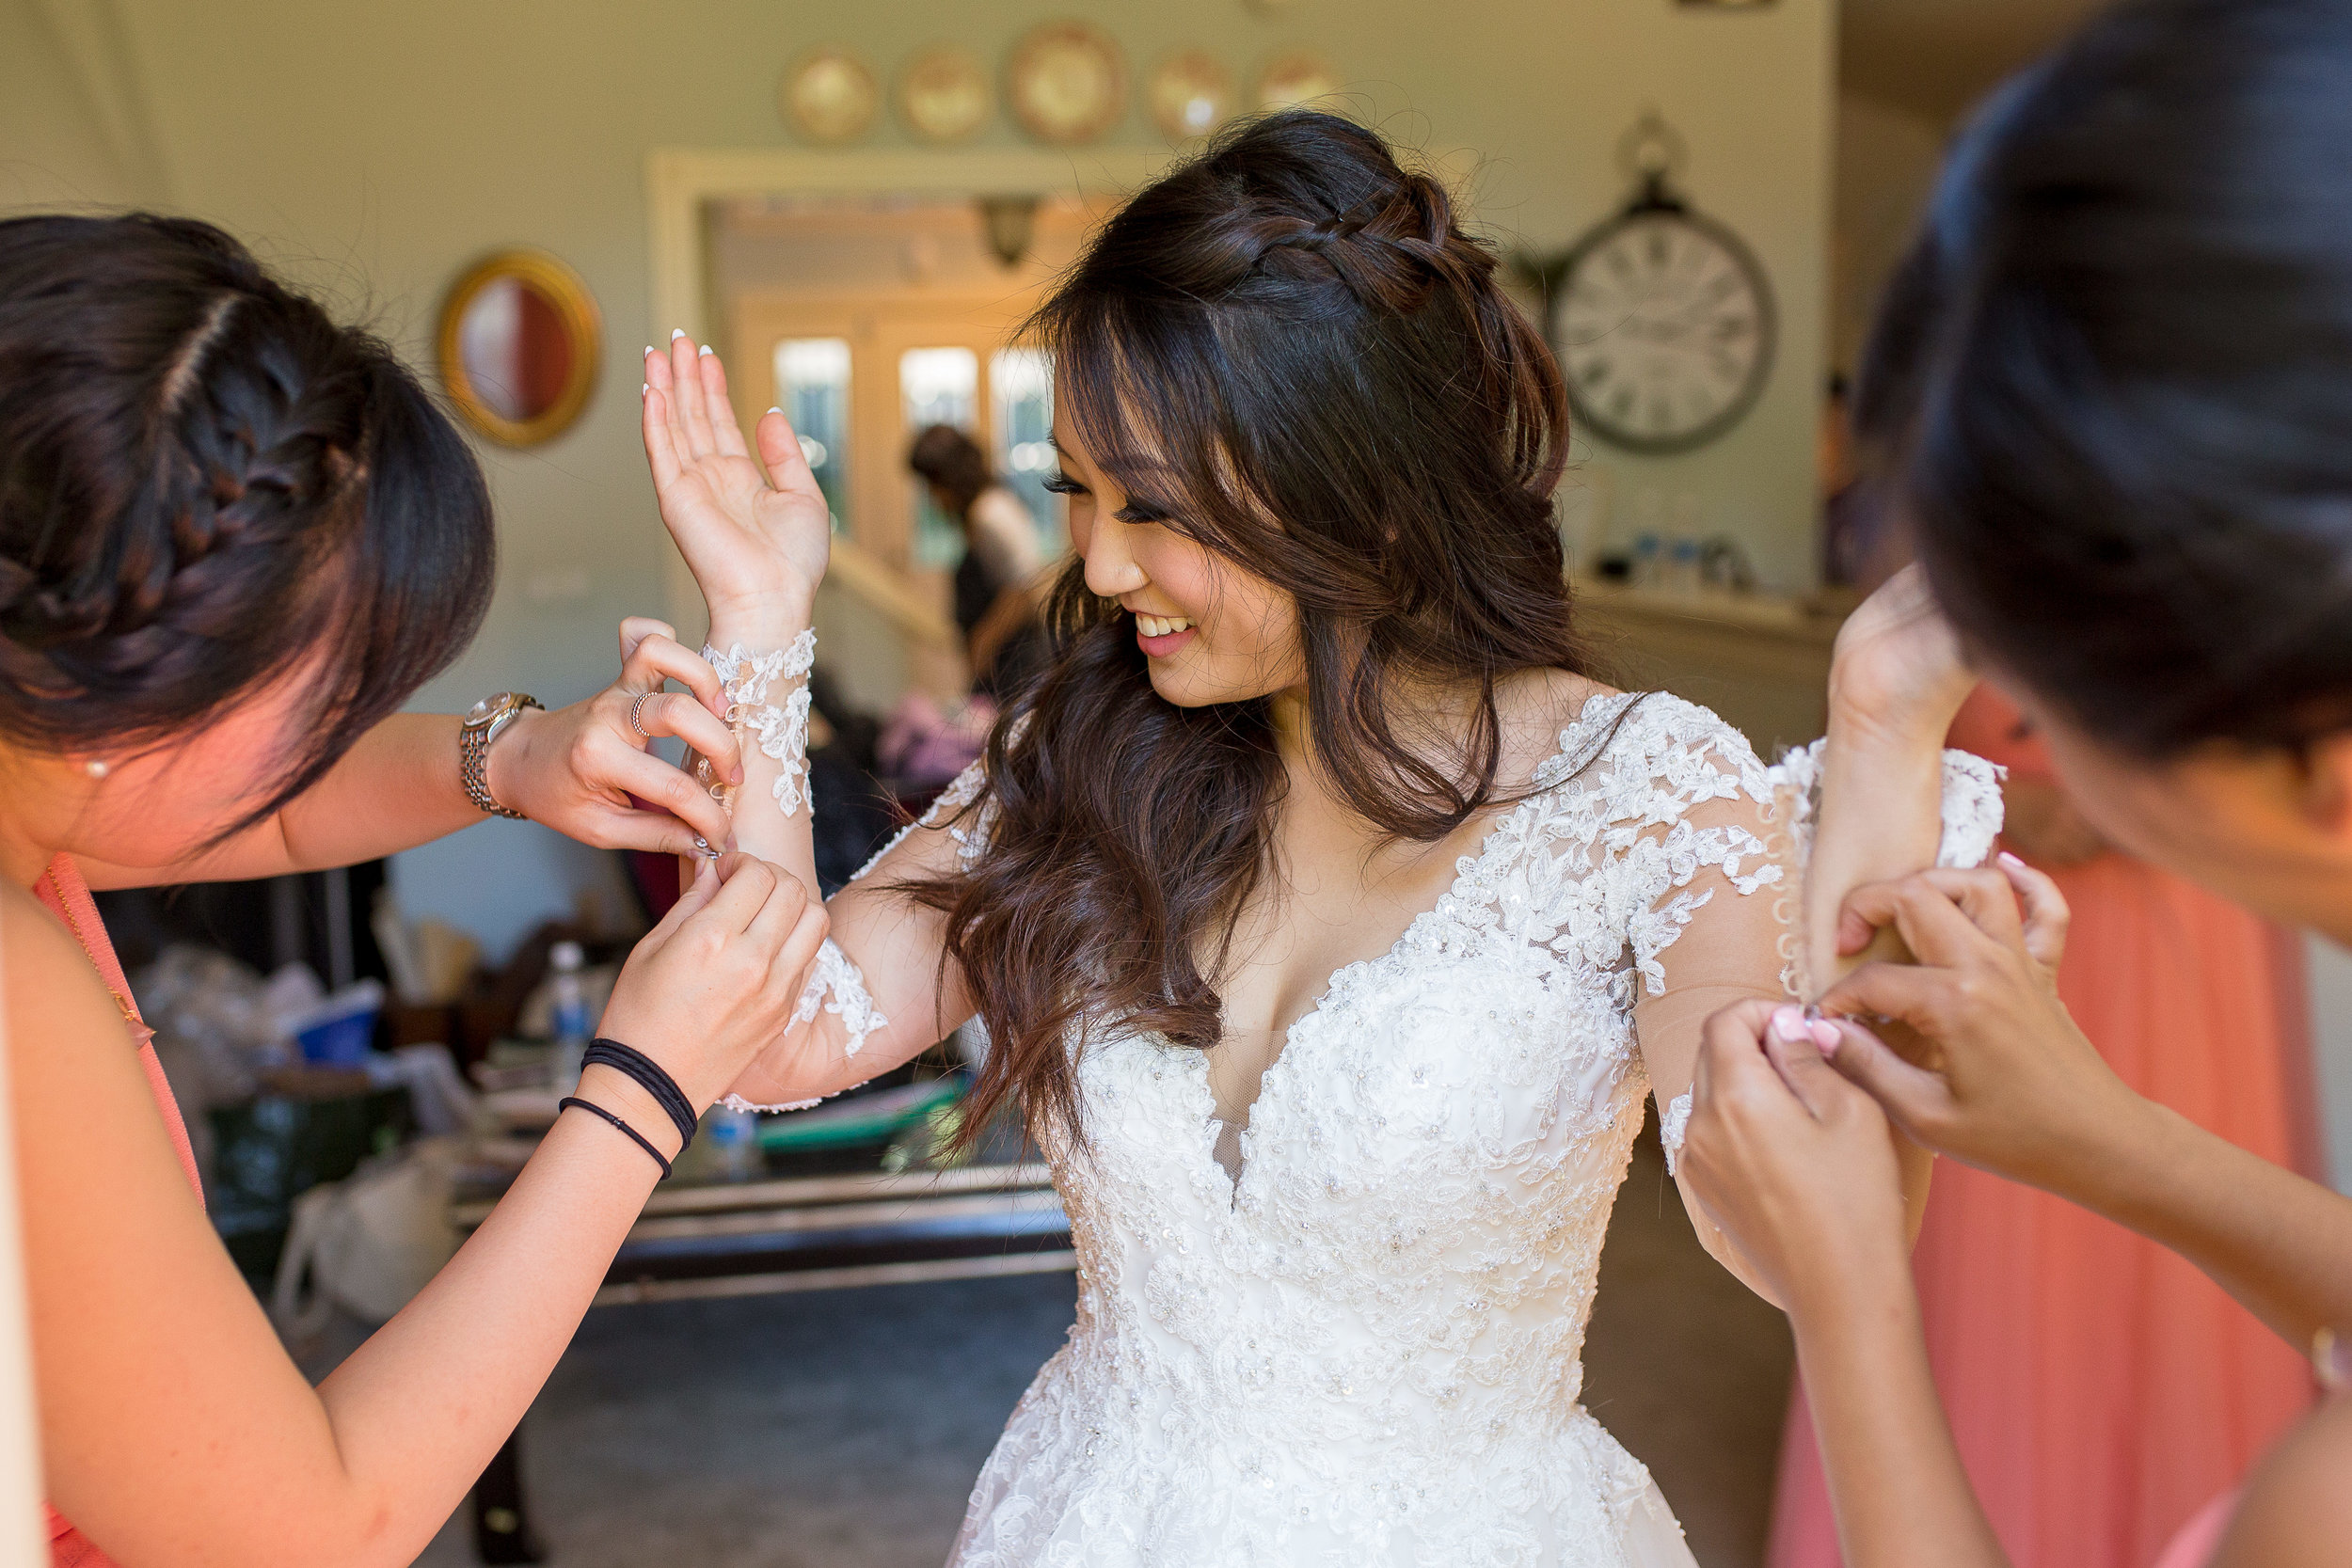 Maybe it doesn't take 2 to button up your sleeves, but why not when you have your bridesmaids there to help?